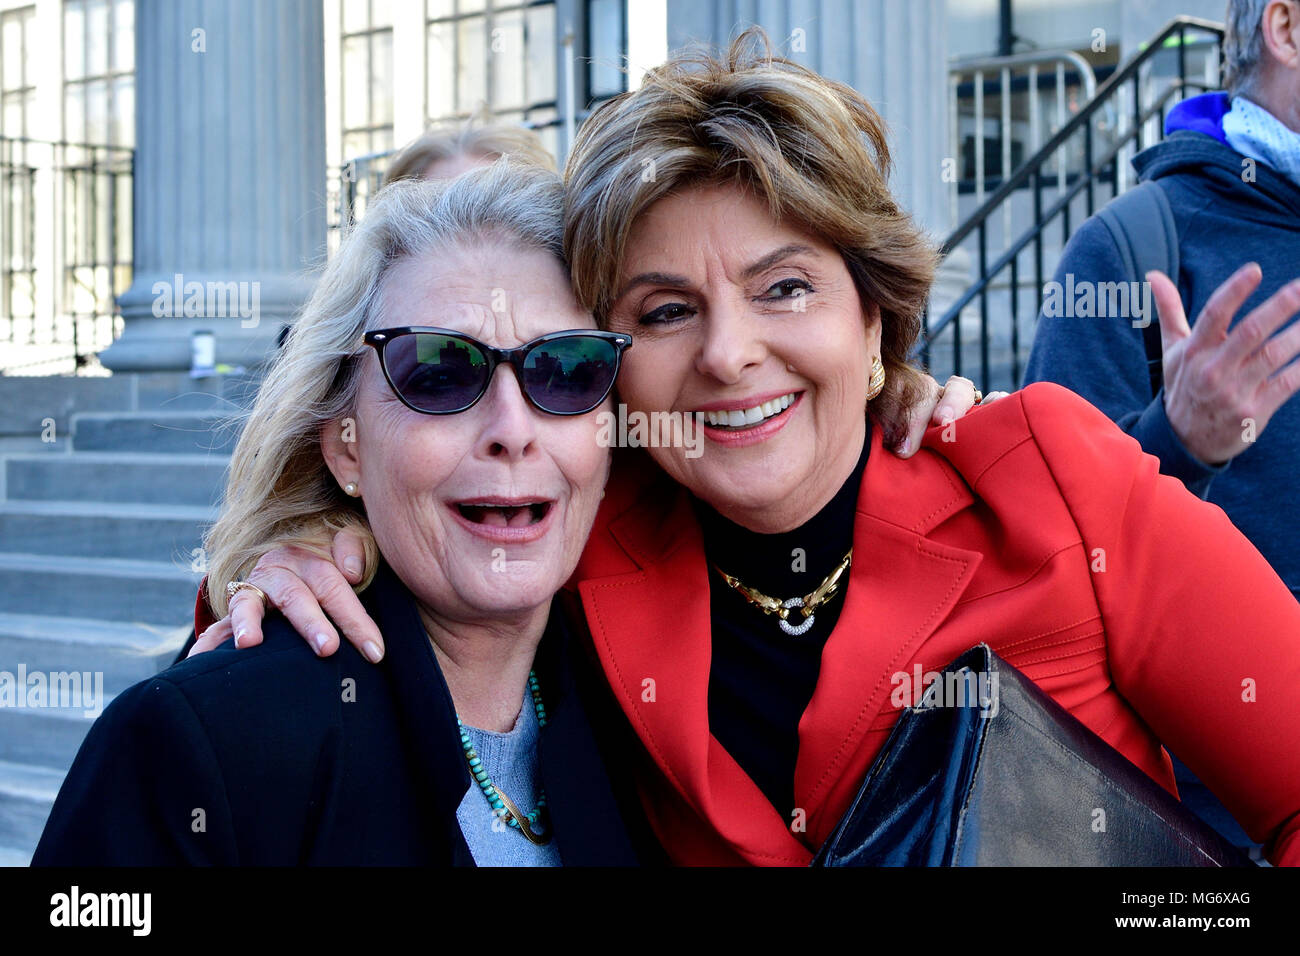 Norristown, USA. 26th Apr, 2018. Attorney Gloria Allred joins victims and supporters celebrate outside the court house after the guilty verdict in the Bill Cosby sexual assault trial, at Montgomery County Court House in Norristown, PA, USA, on April 26, 2018. Credit: Bastiaan Slabbers/Alamy Live News - Stock Image